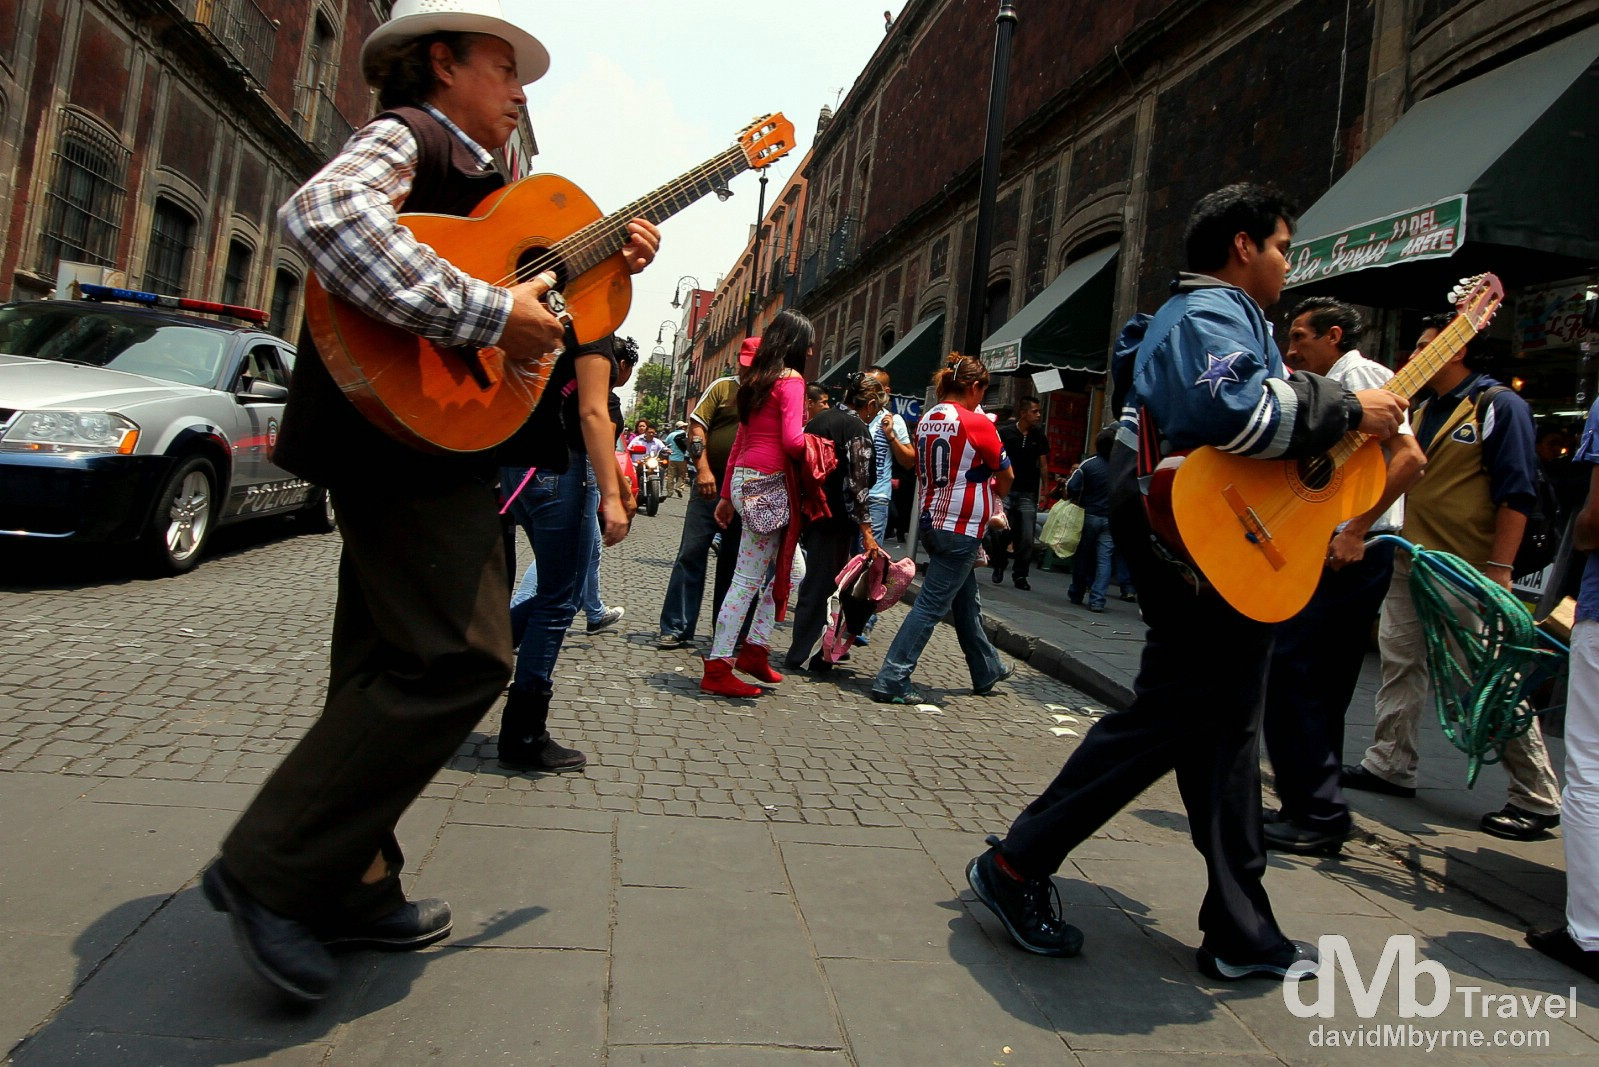 It seems like Mexico moves to the rhythm of a beat. Music is everywhere in the country - one the streets, on public transport & blaring from doorways & moving cars. Moneda, Central Mexico City. April 26th 2013.